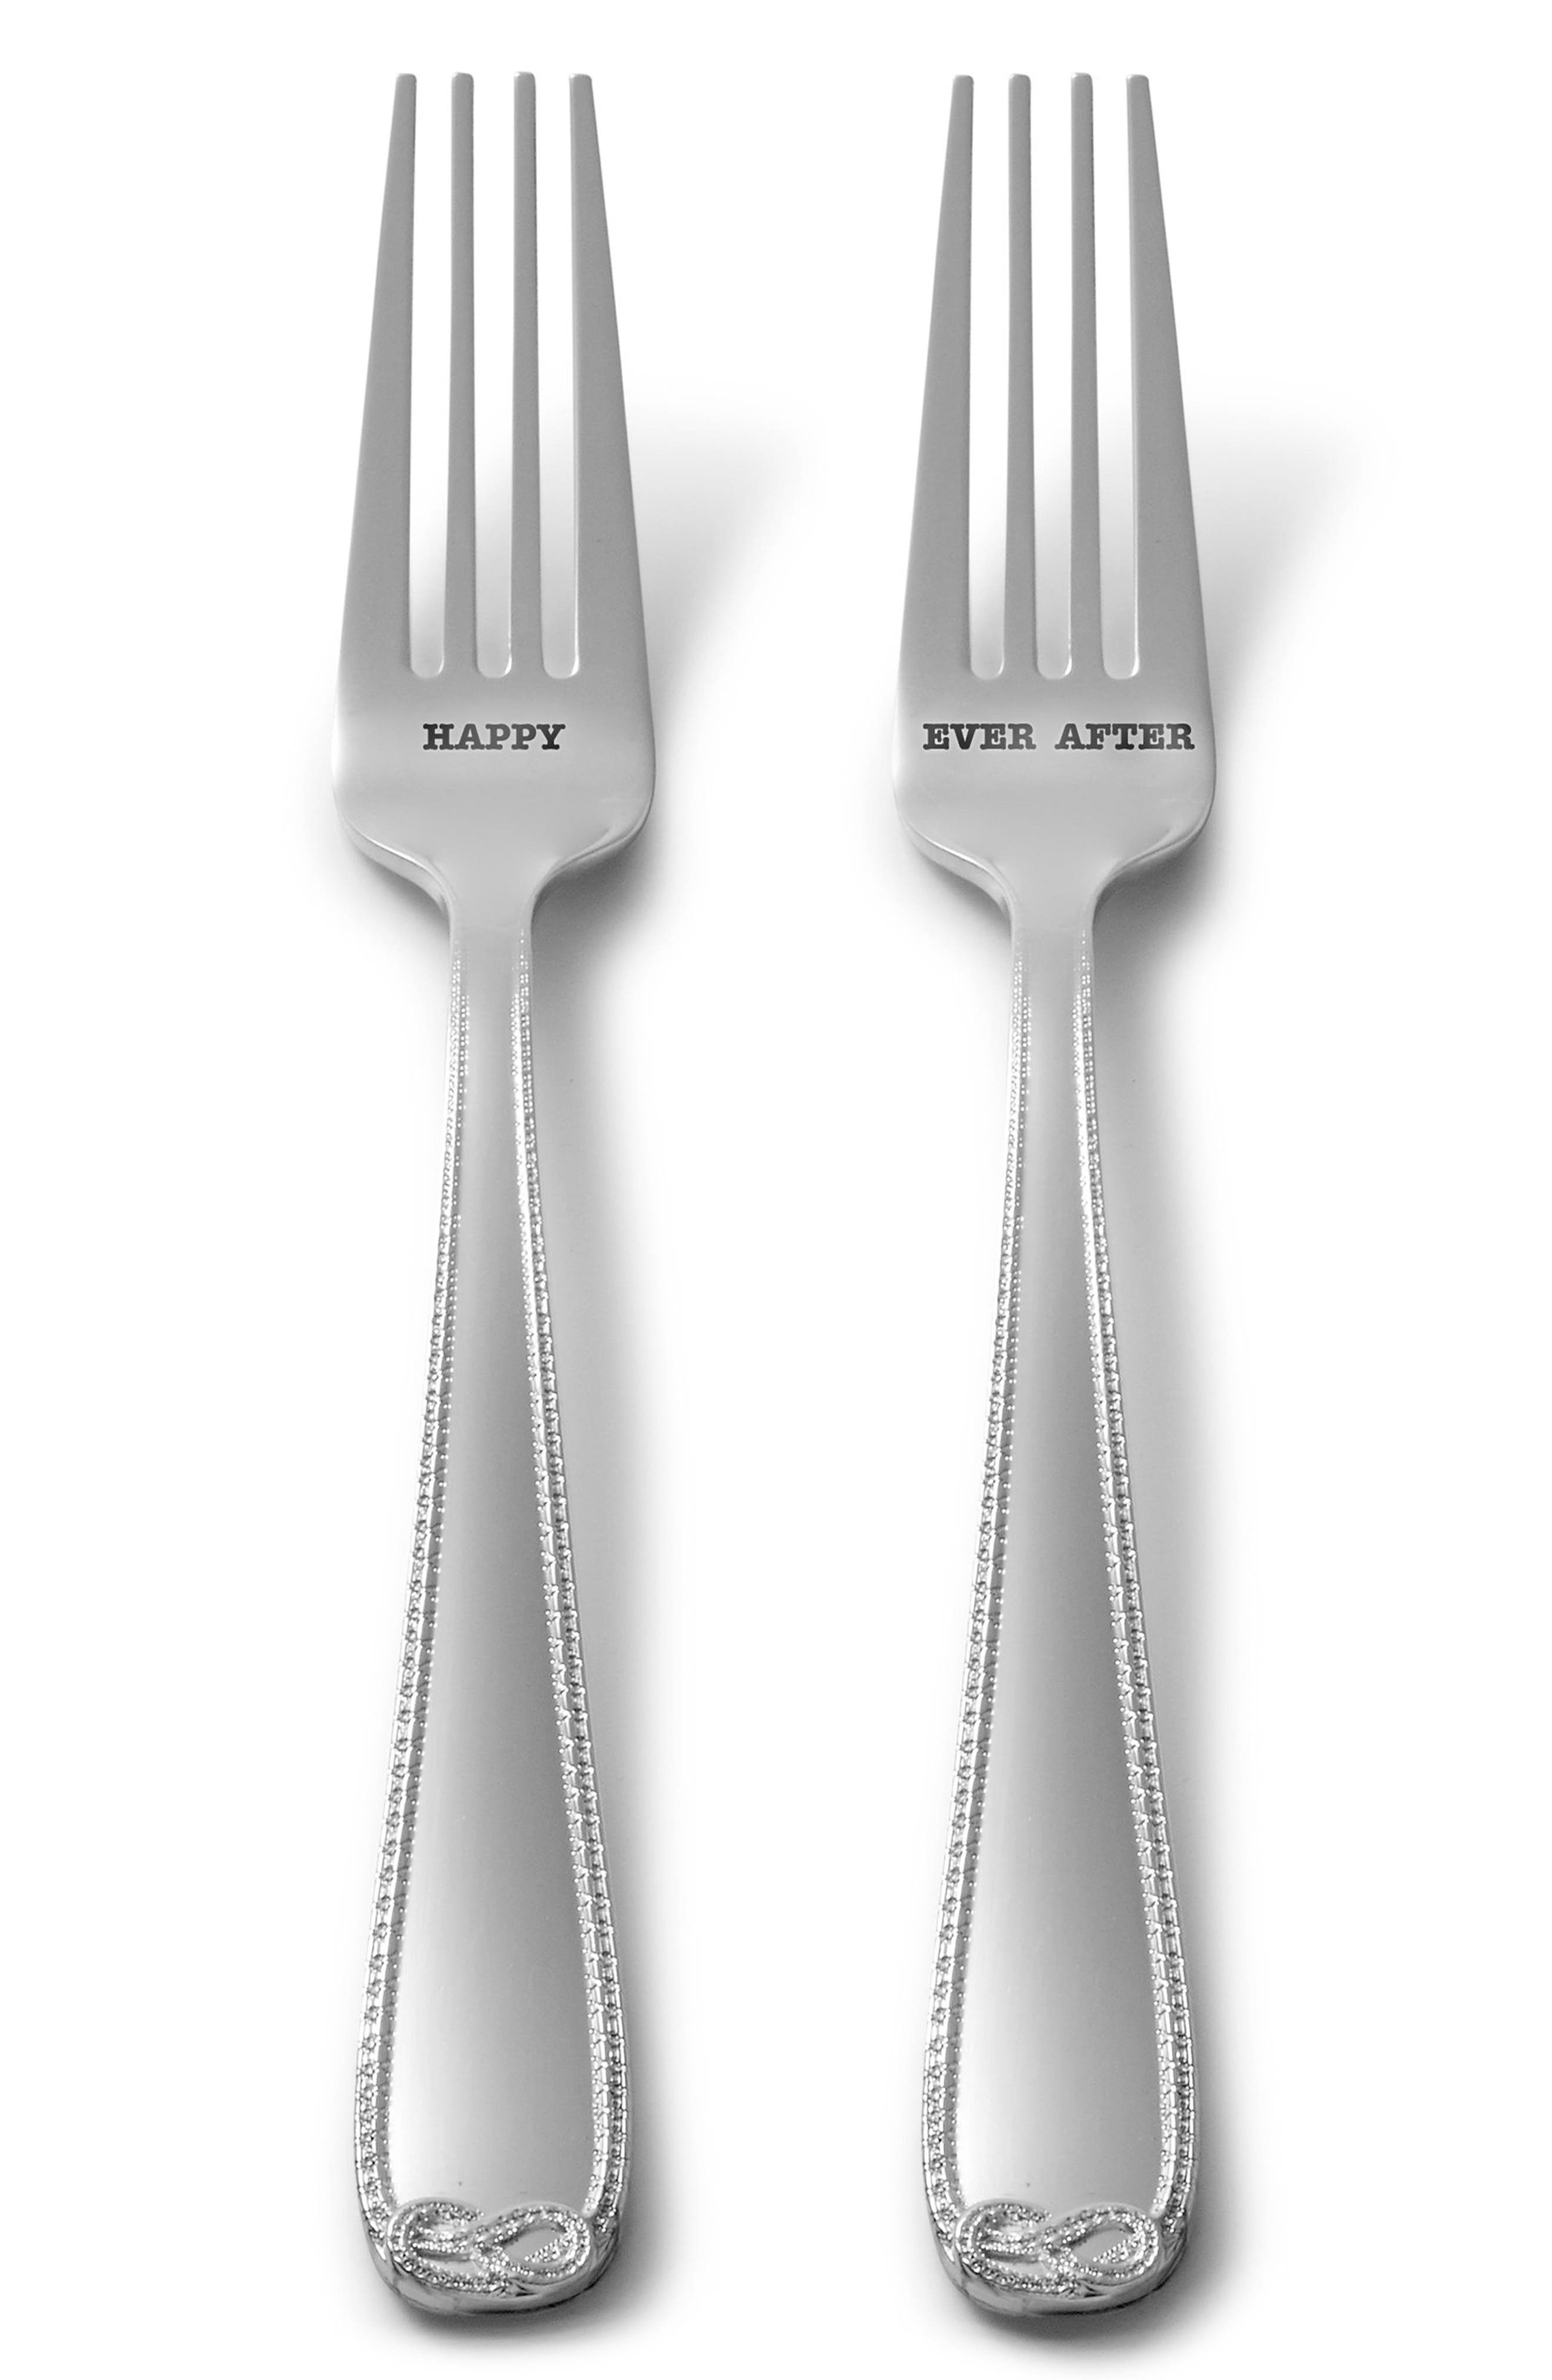 x Wedgwood Infinity Happy Ever After Set of 2 Silver Plated Forks,                         Main,                         color, 040